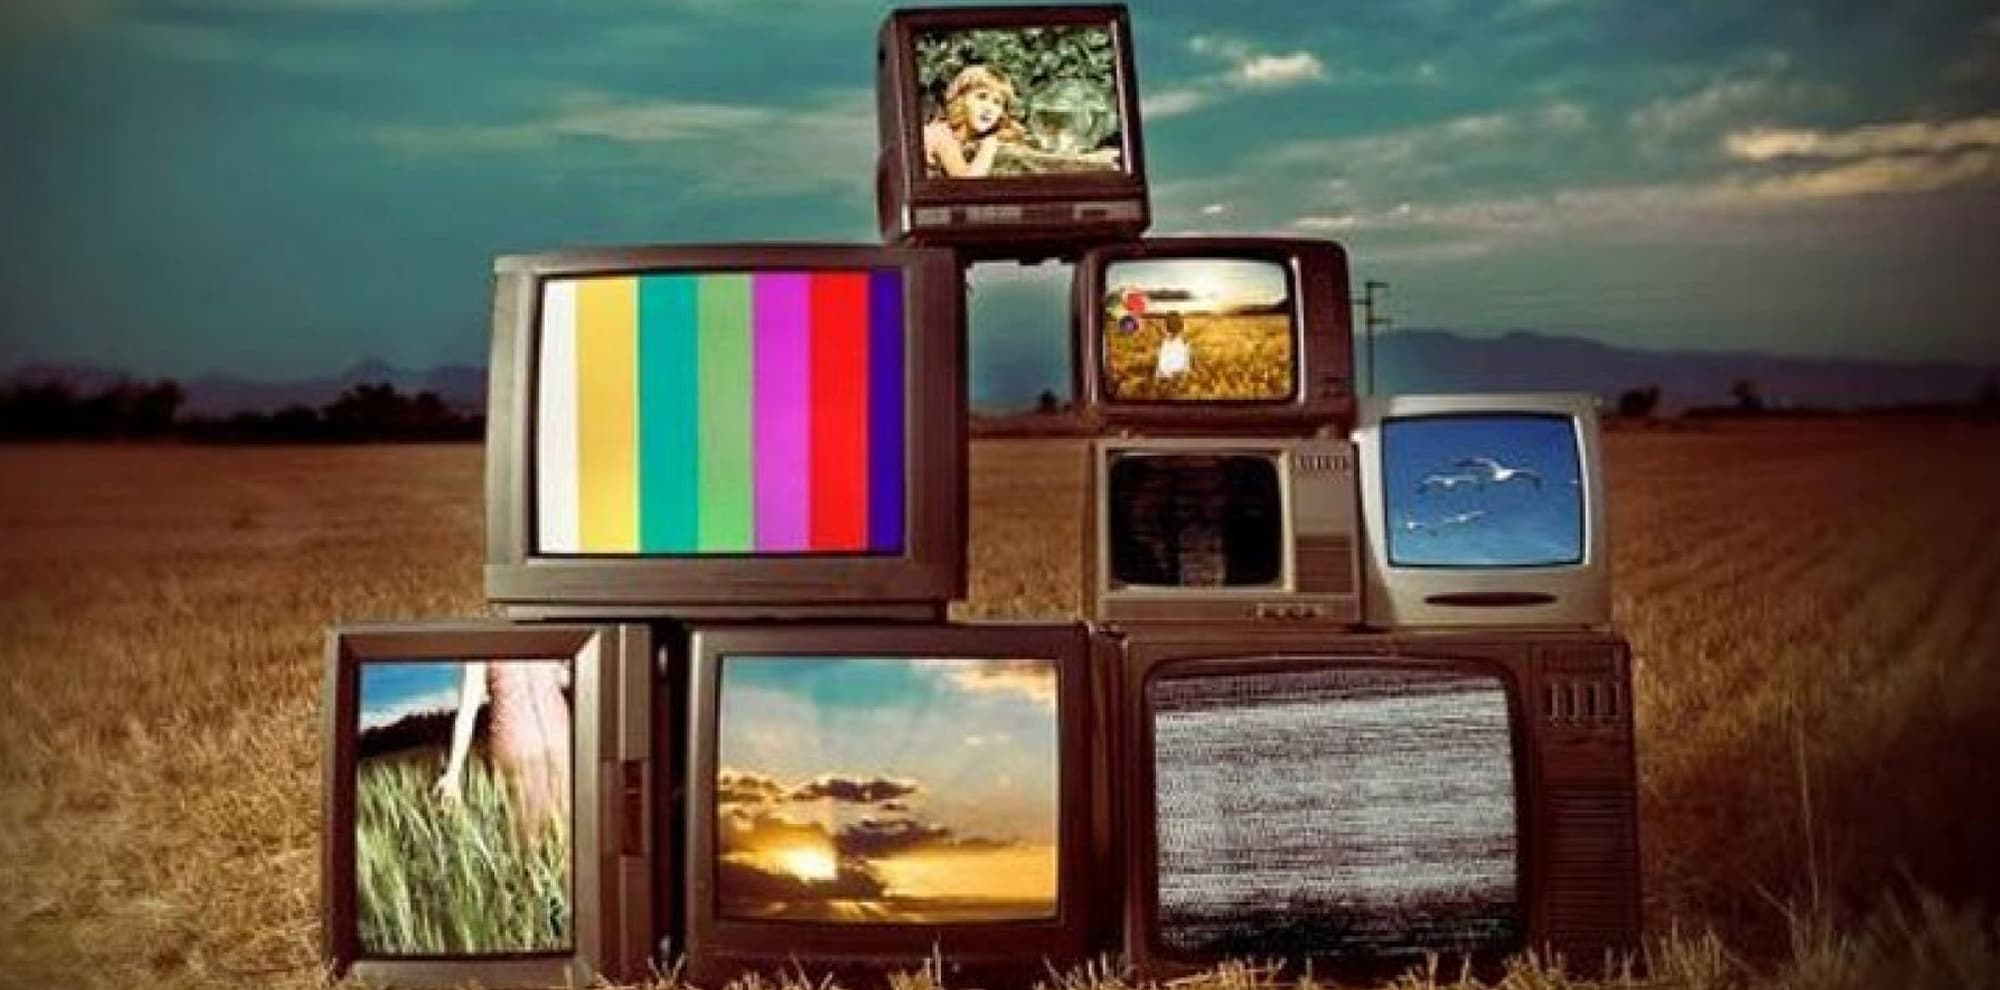 TV Viewership trends FY 2015-16